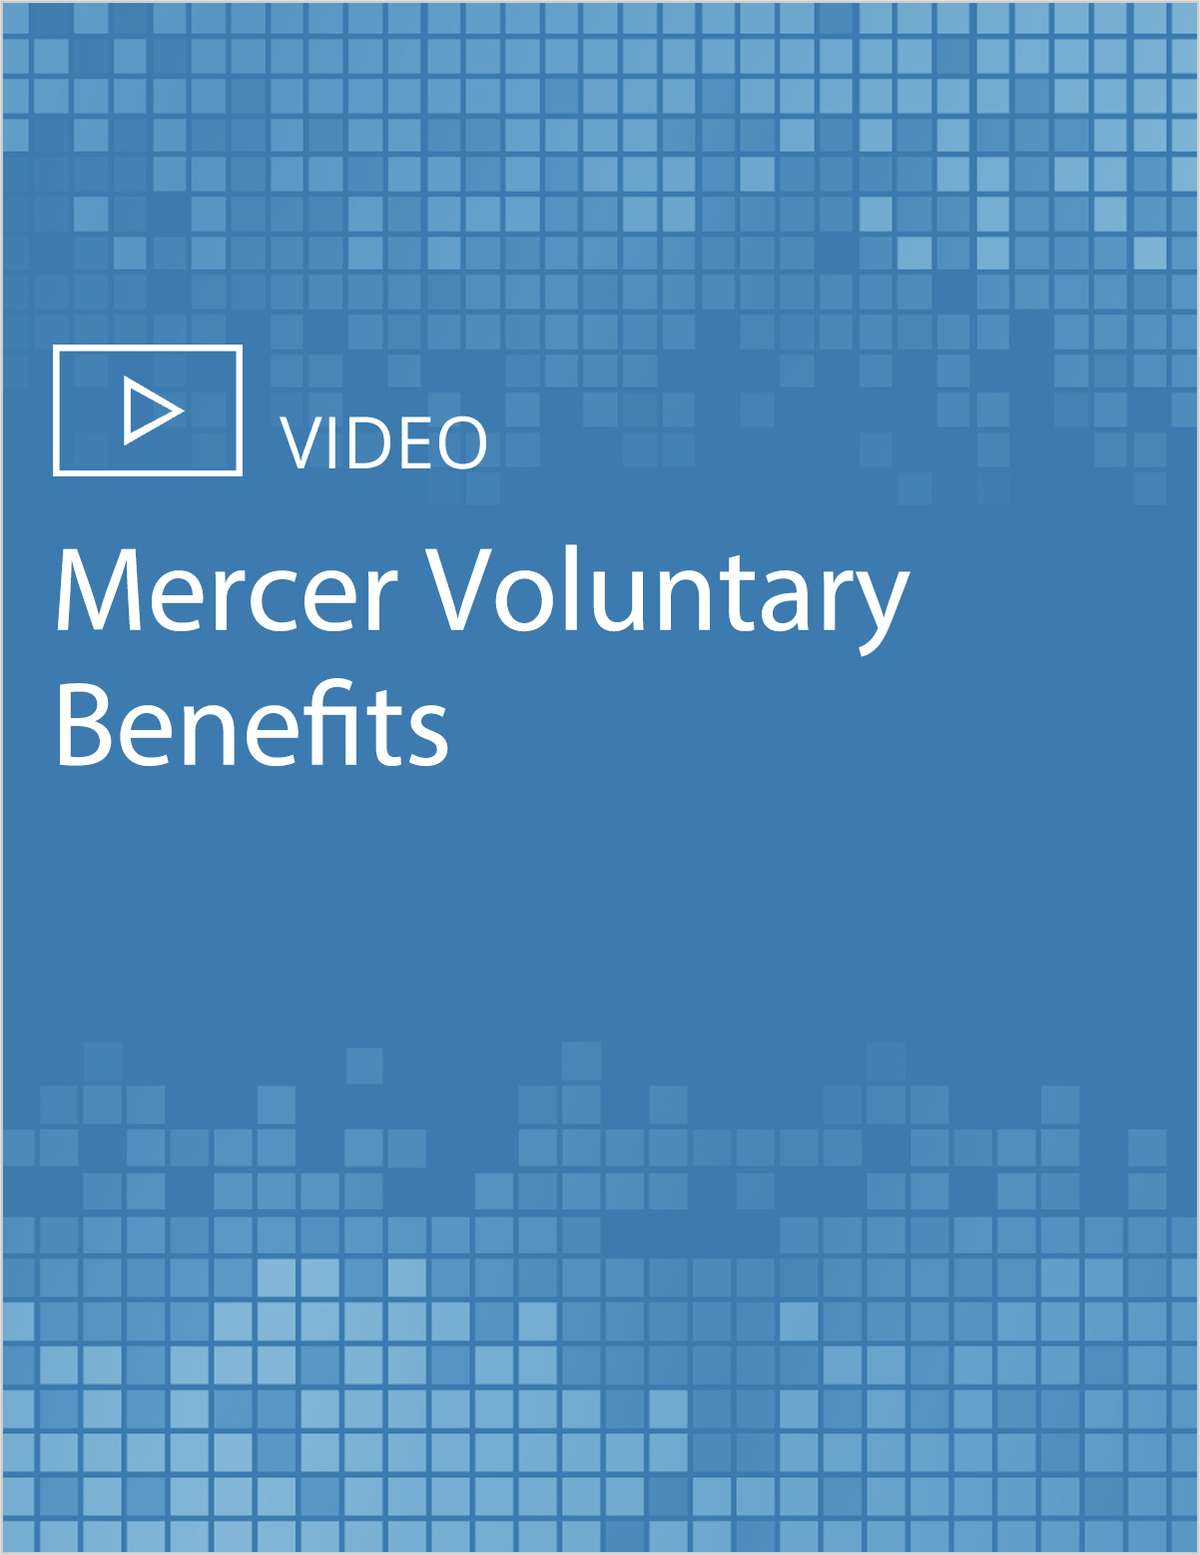 Mercer Voluntary Benefits